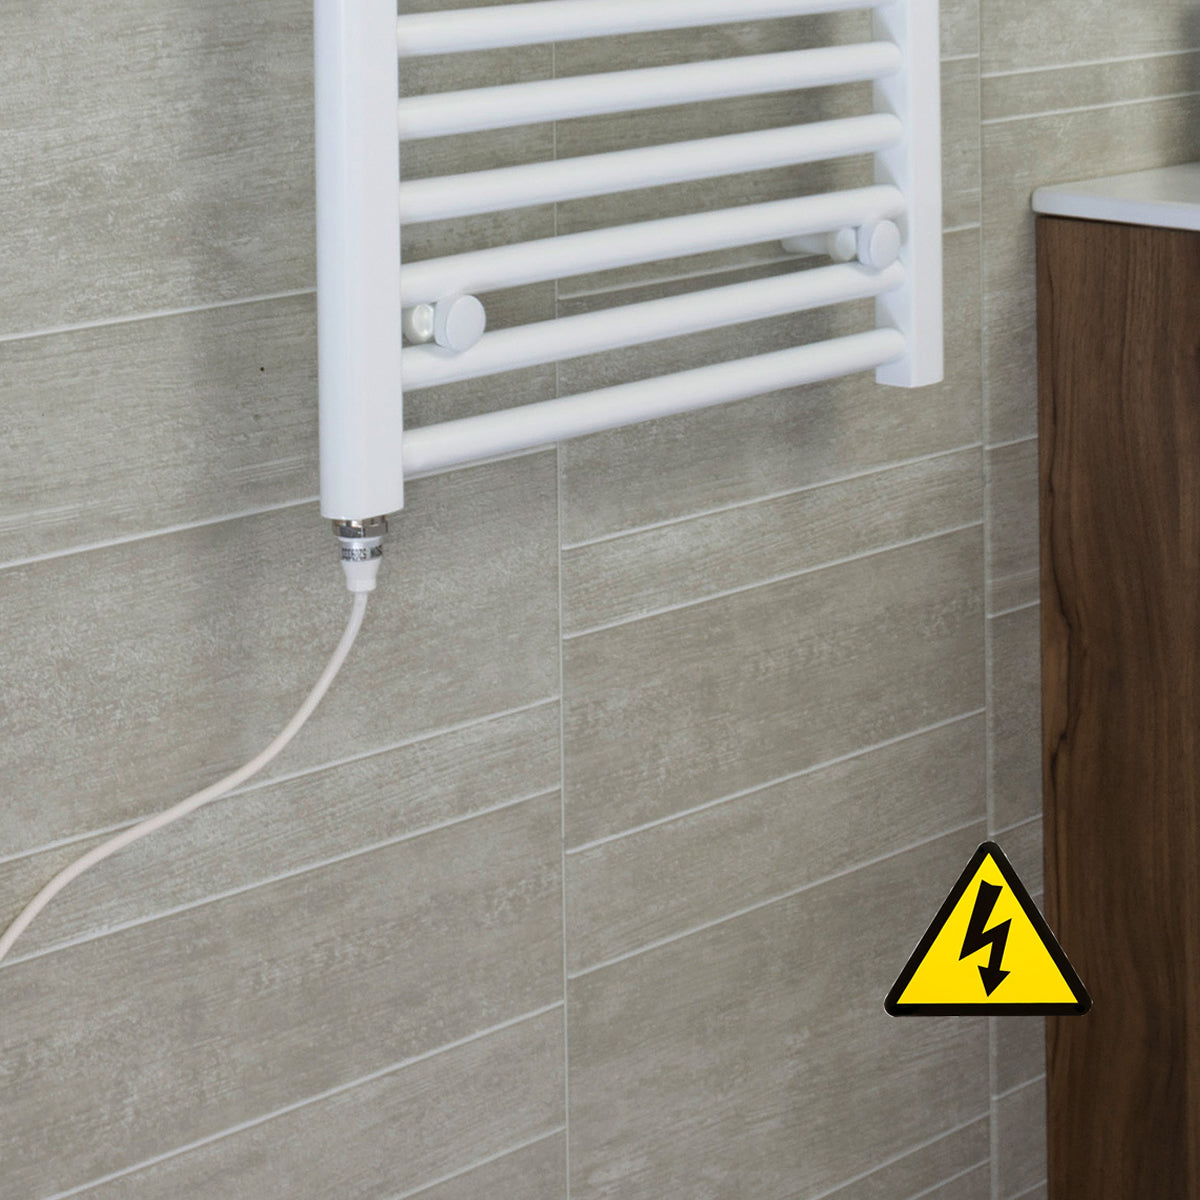 650mm Wide 400mm High Pre-Filled White Electric Towel Rail Radiator With Single Heat Element